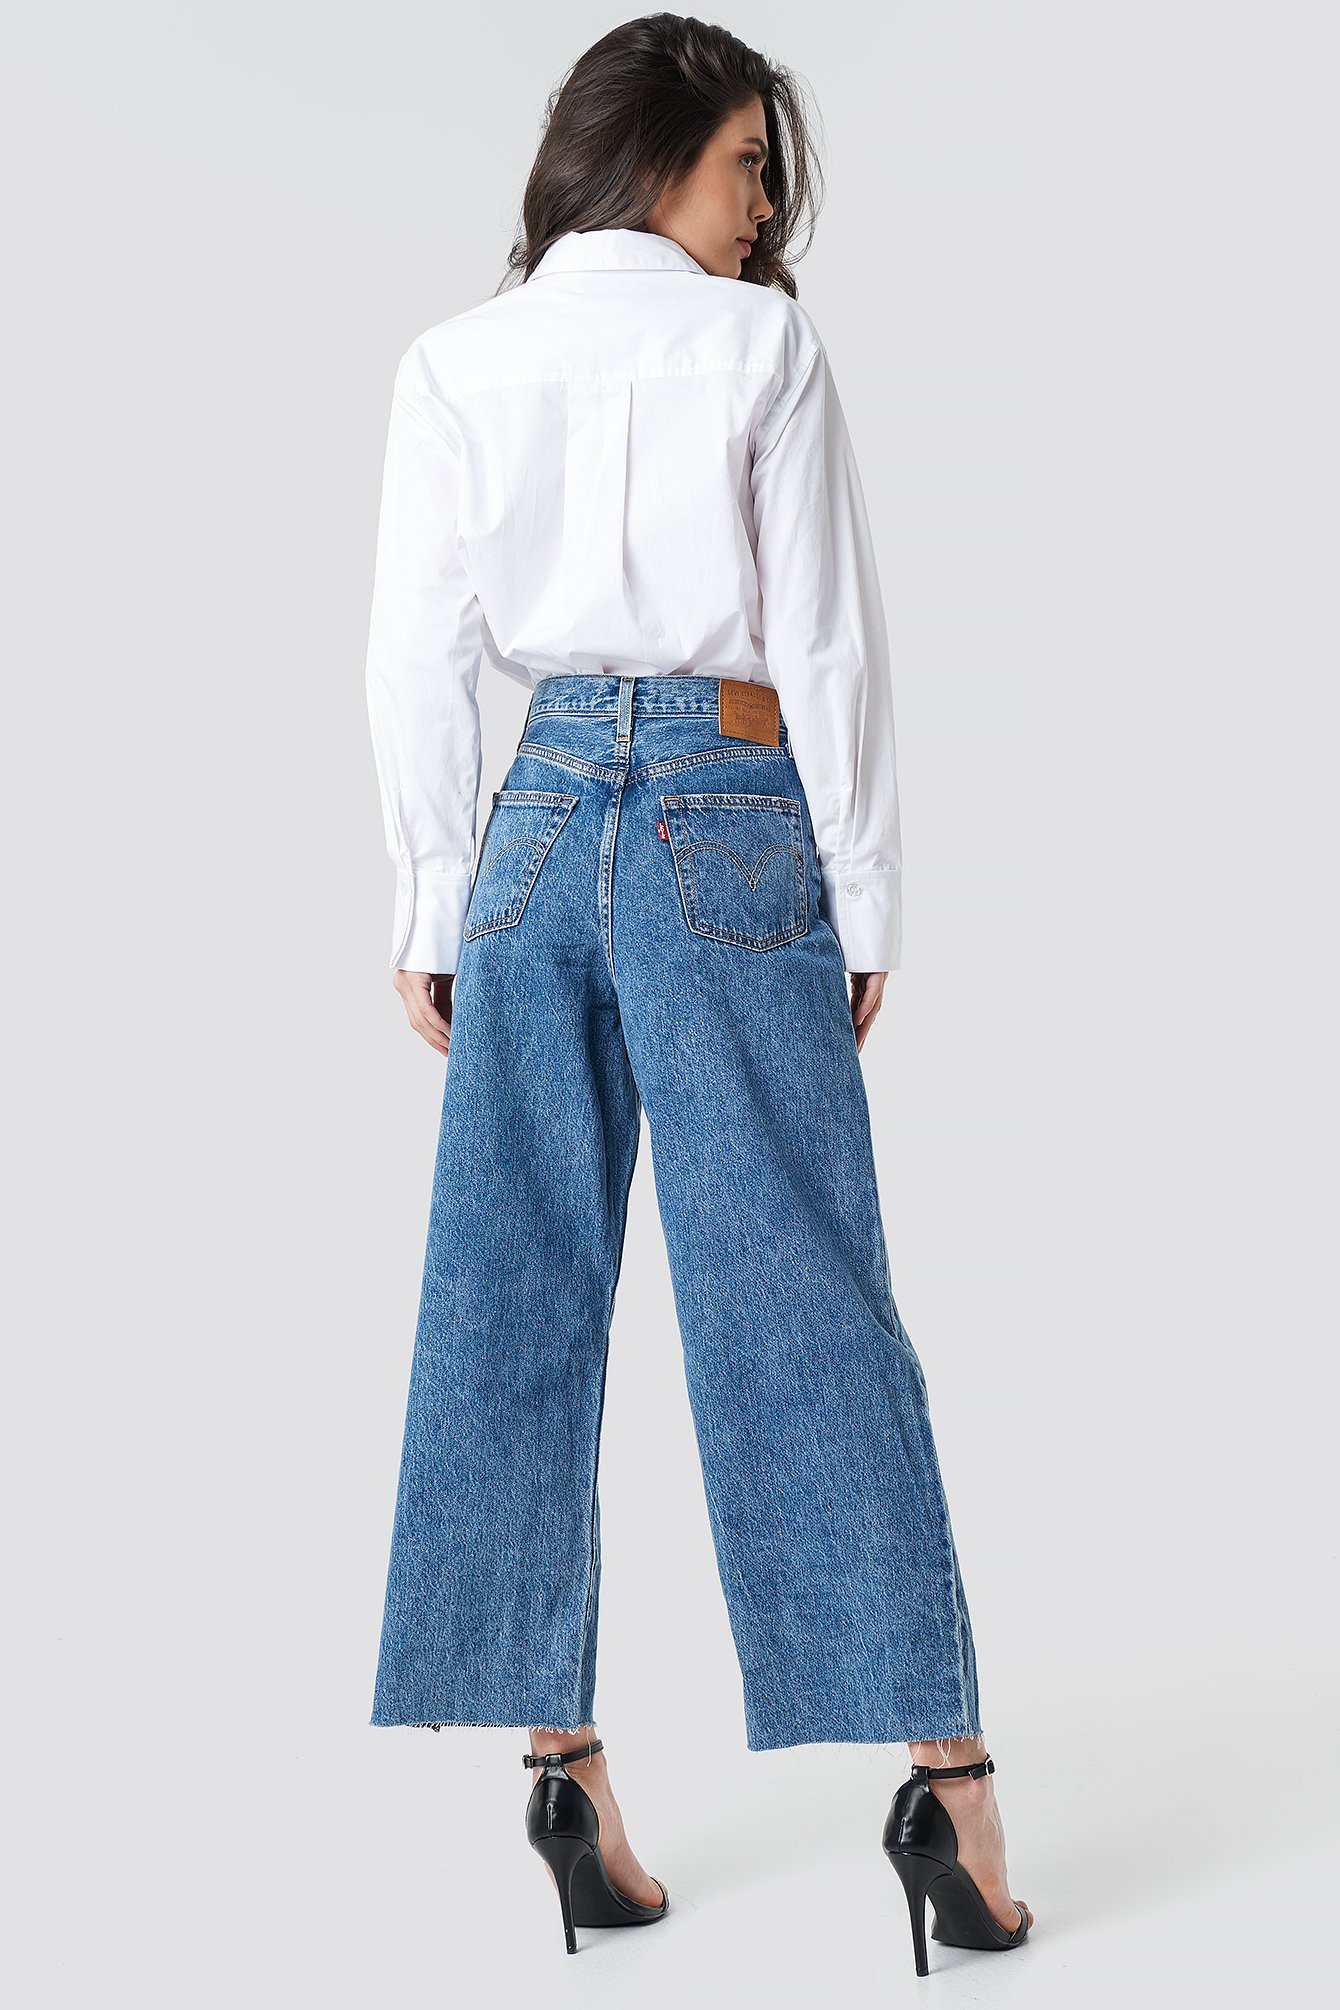 levi's -  Ribcage Pleated Crop Jeans - Blue